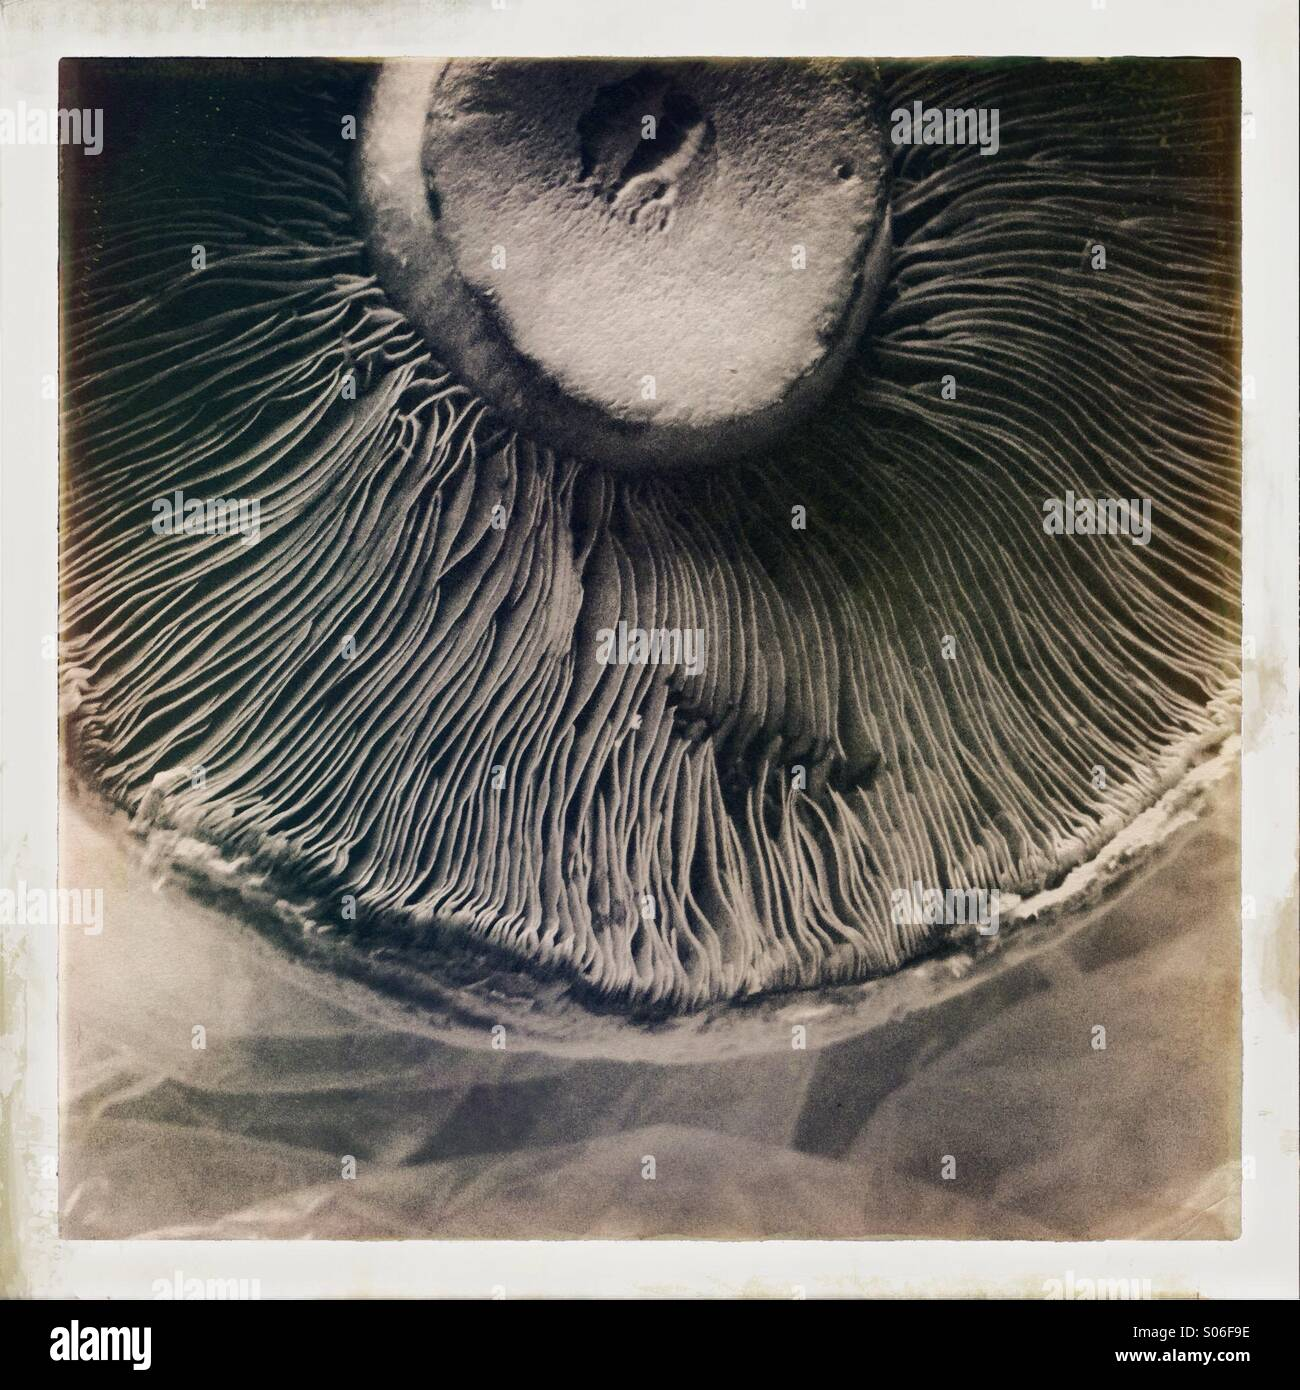 Delicate lines and folds of a mushroom underside - Stock Image